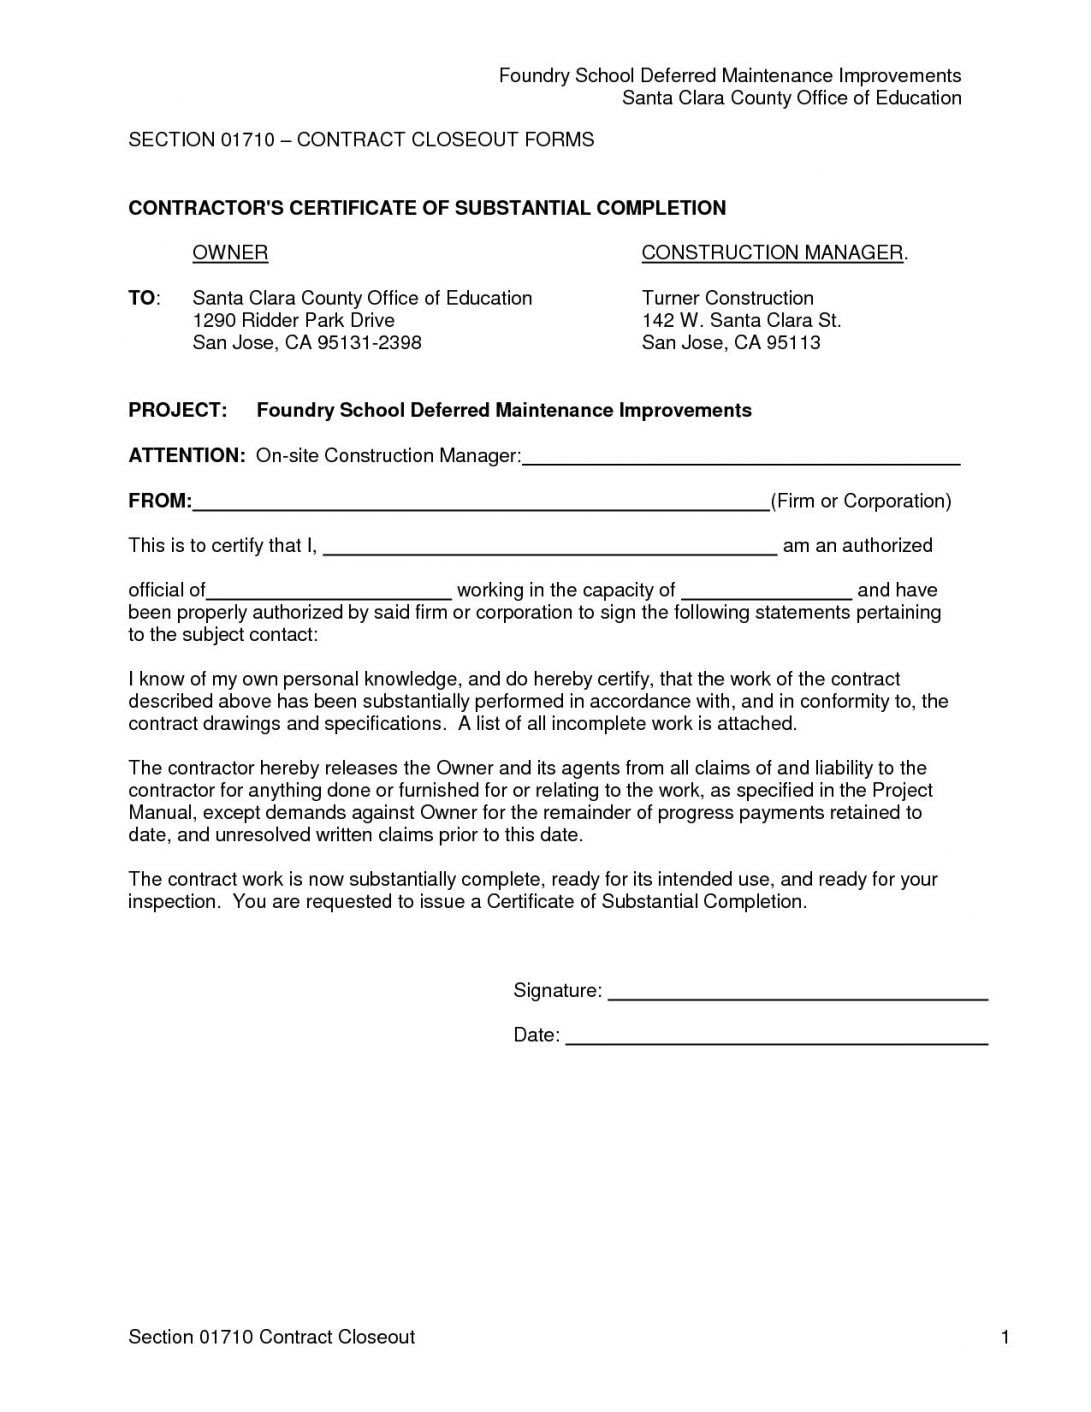 It Project Completion Certificate Sample New Construction Intended For Certificate Of In 2020 Certificate Of Completion Template Certificate Of Completion Certificate